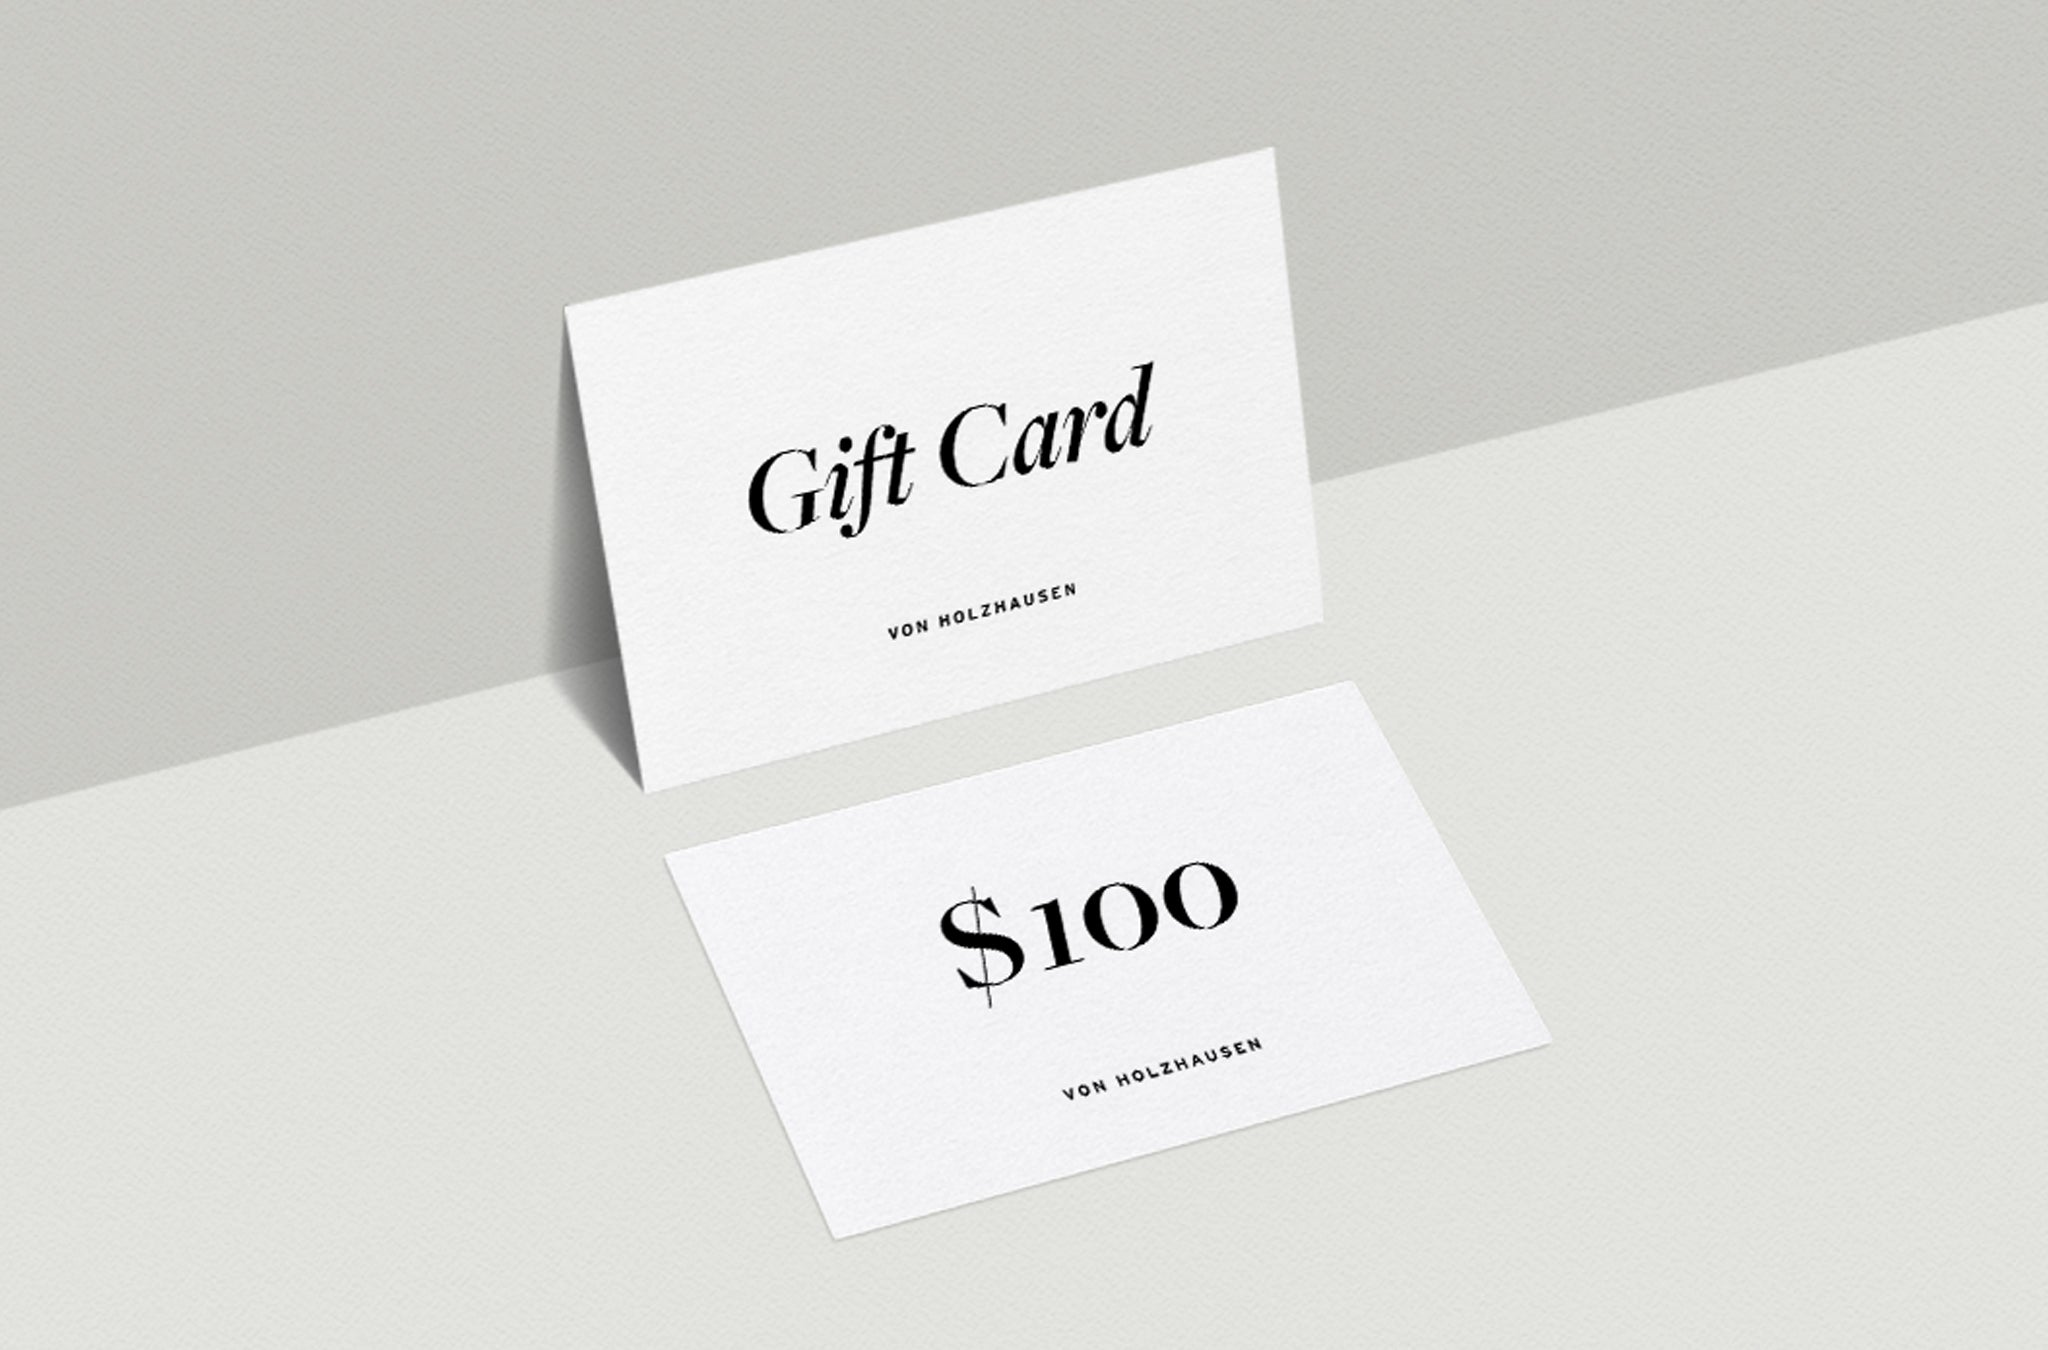 The Gift Card in Virtual Gift Card